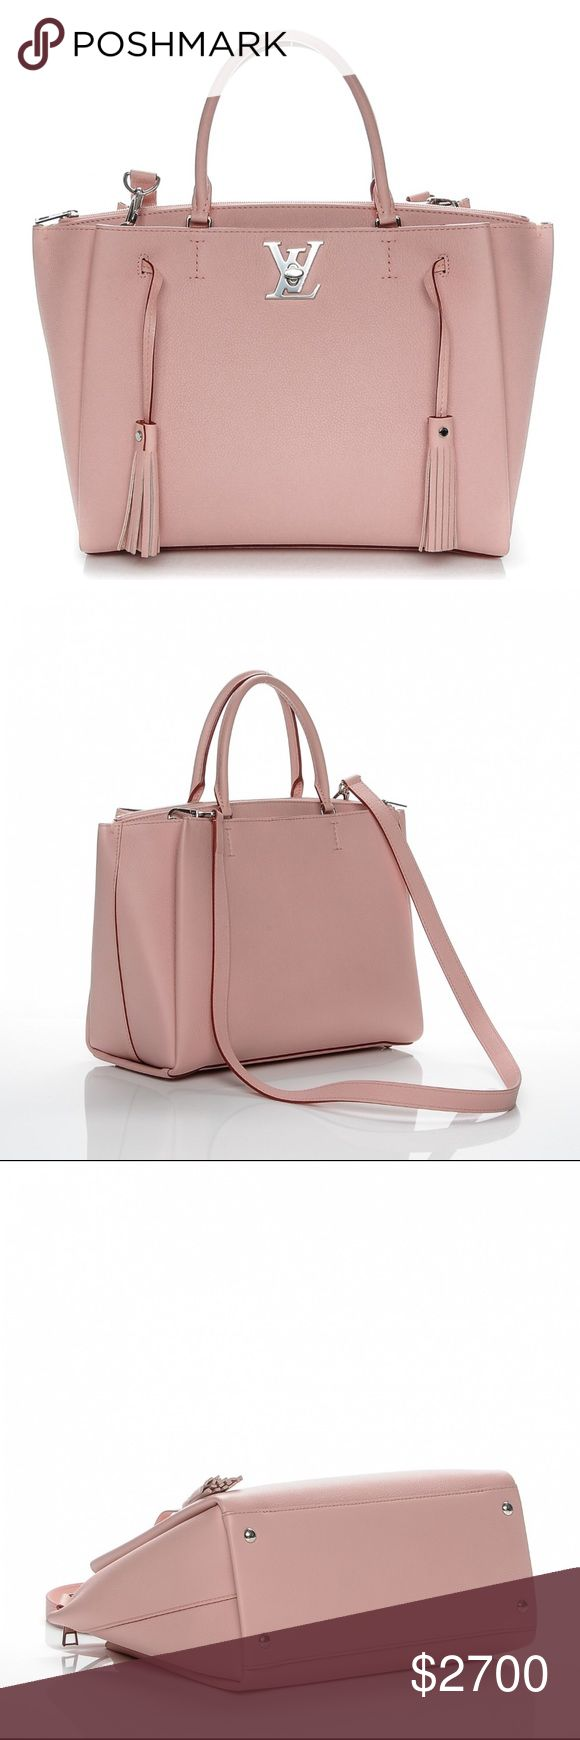 Authentic LV Calfskin Lockmeto Rose Poudre This chic handbag is crafted of grained calfskin leather in rose pink. The bag features looping pink leather strap top handles with pink tassel detailing at the front, an optional shoulder strap and a polished silver Louis Vuitton turn lock. This opens to a partitioned burgundy suede interior with a large center pocket with patch pockets. Looks brand new. Length: 12 in Width: 6 in Height: 9.50 in Drop: 5.25 in Comes With: strap, dust bag and box…